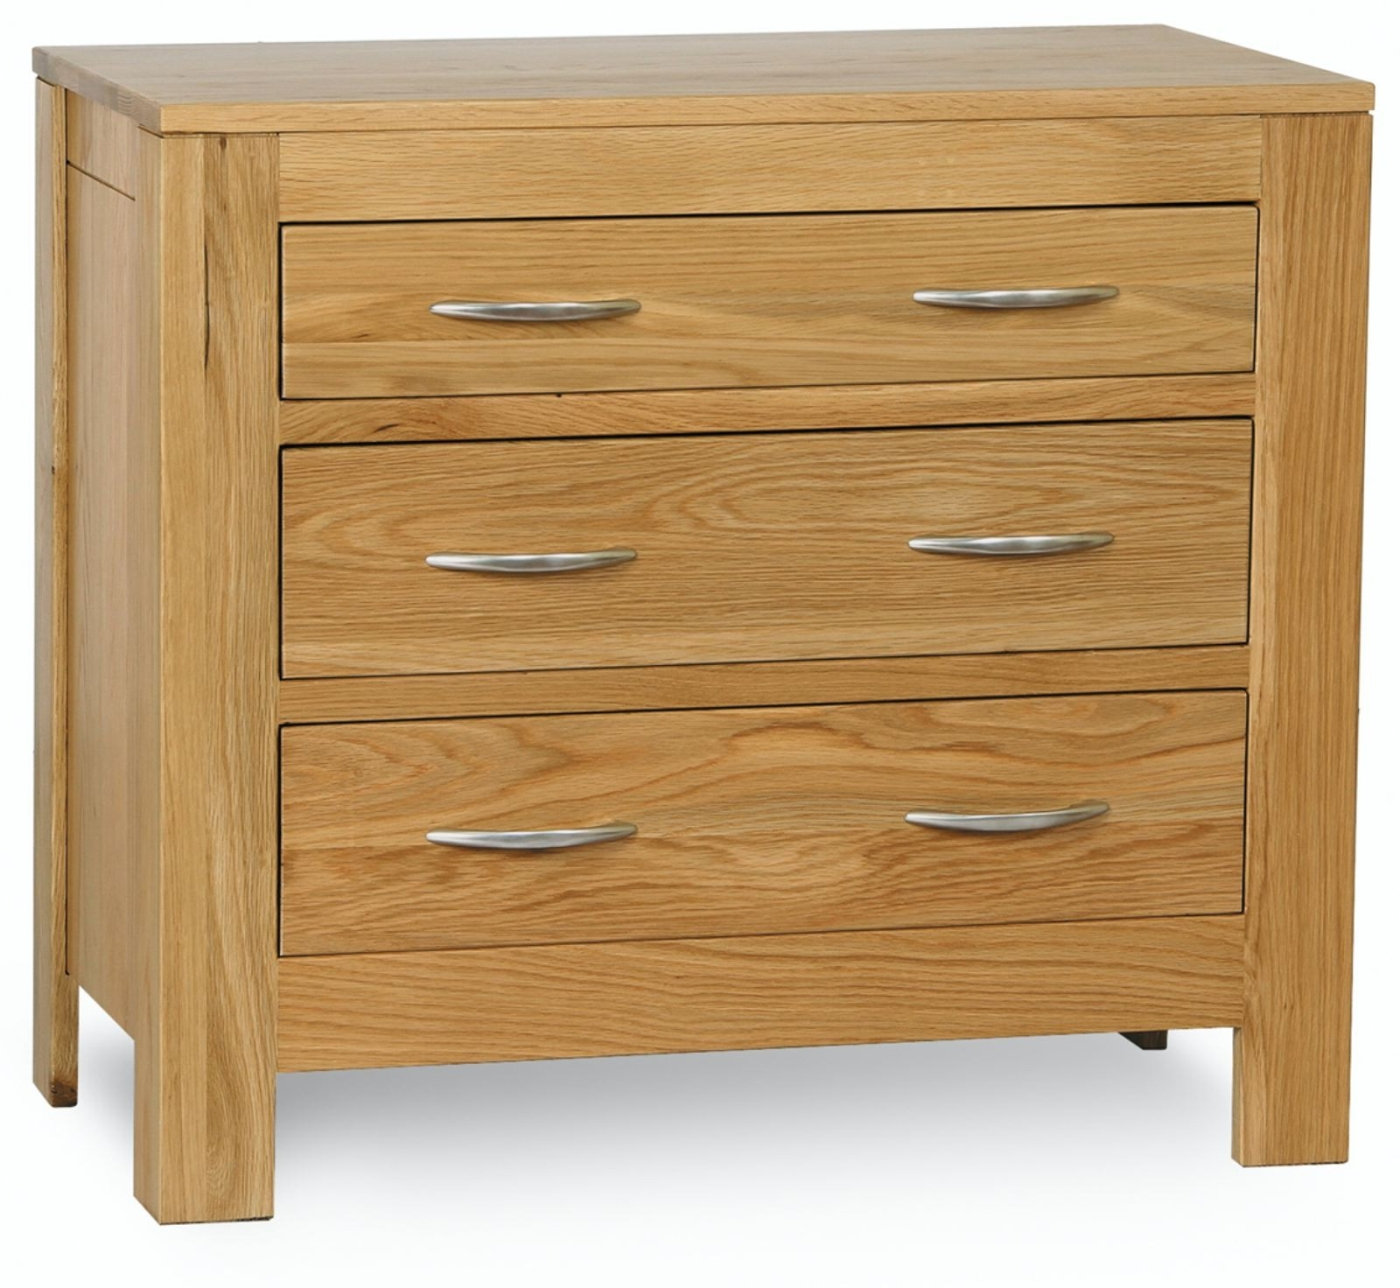 Cotswold solid oak bedroom furniture small chest of for Solid oak furniture